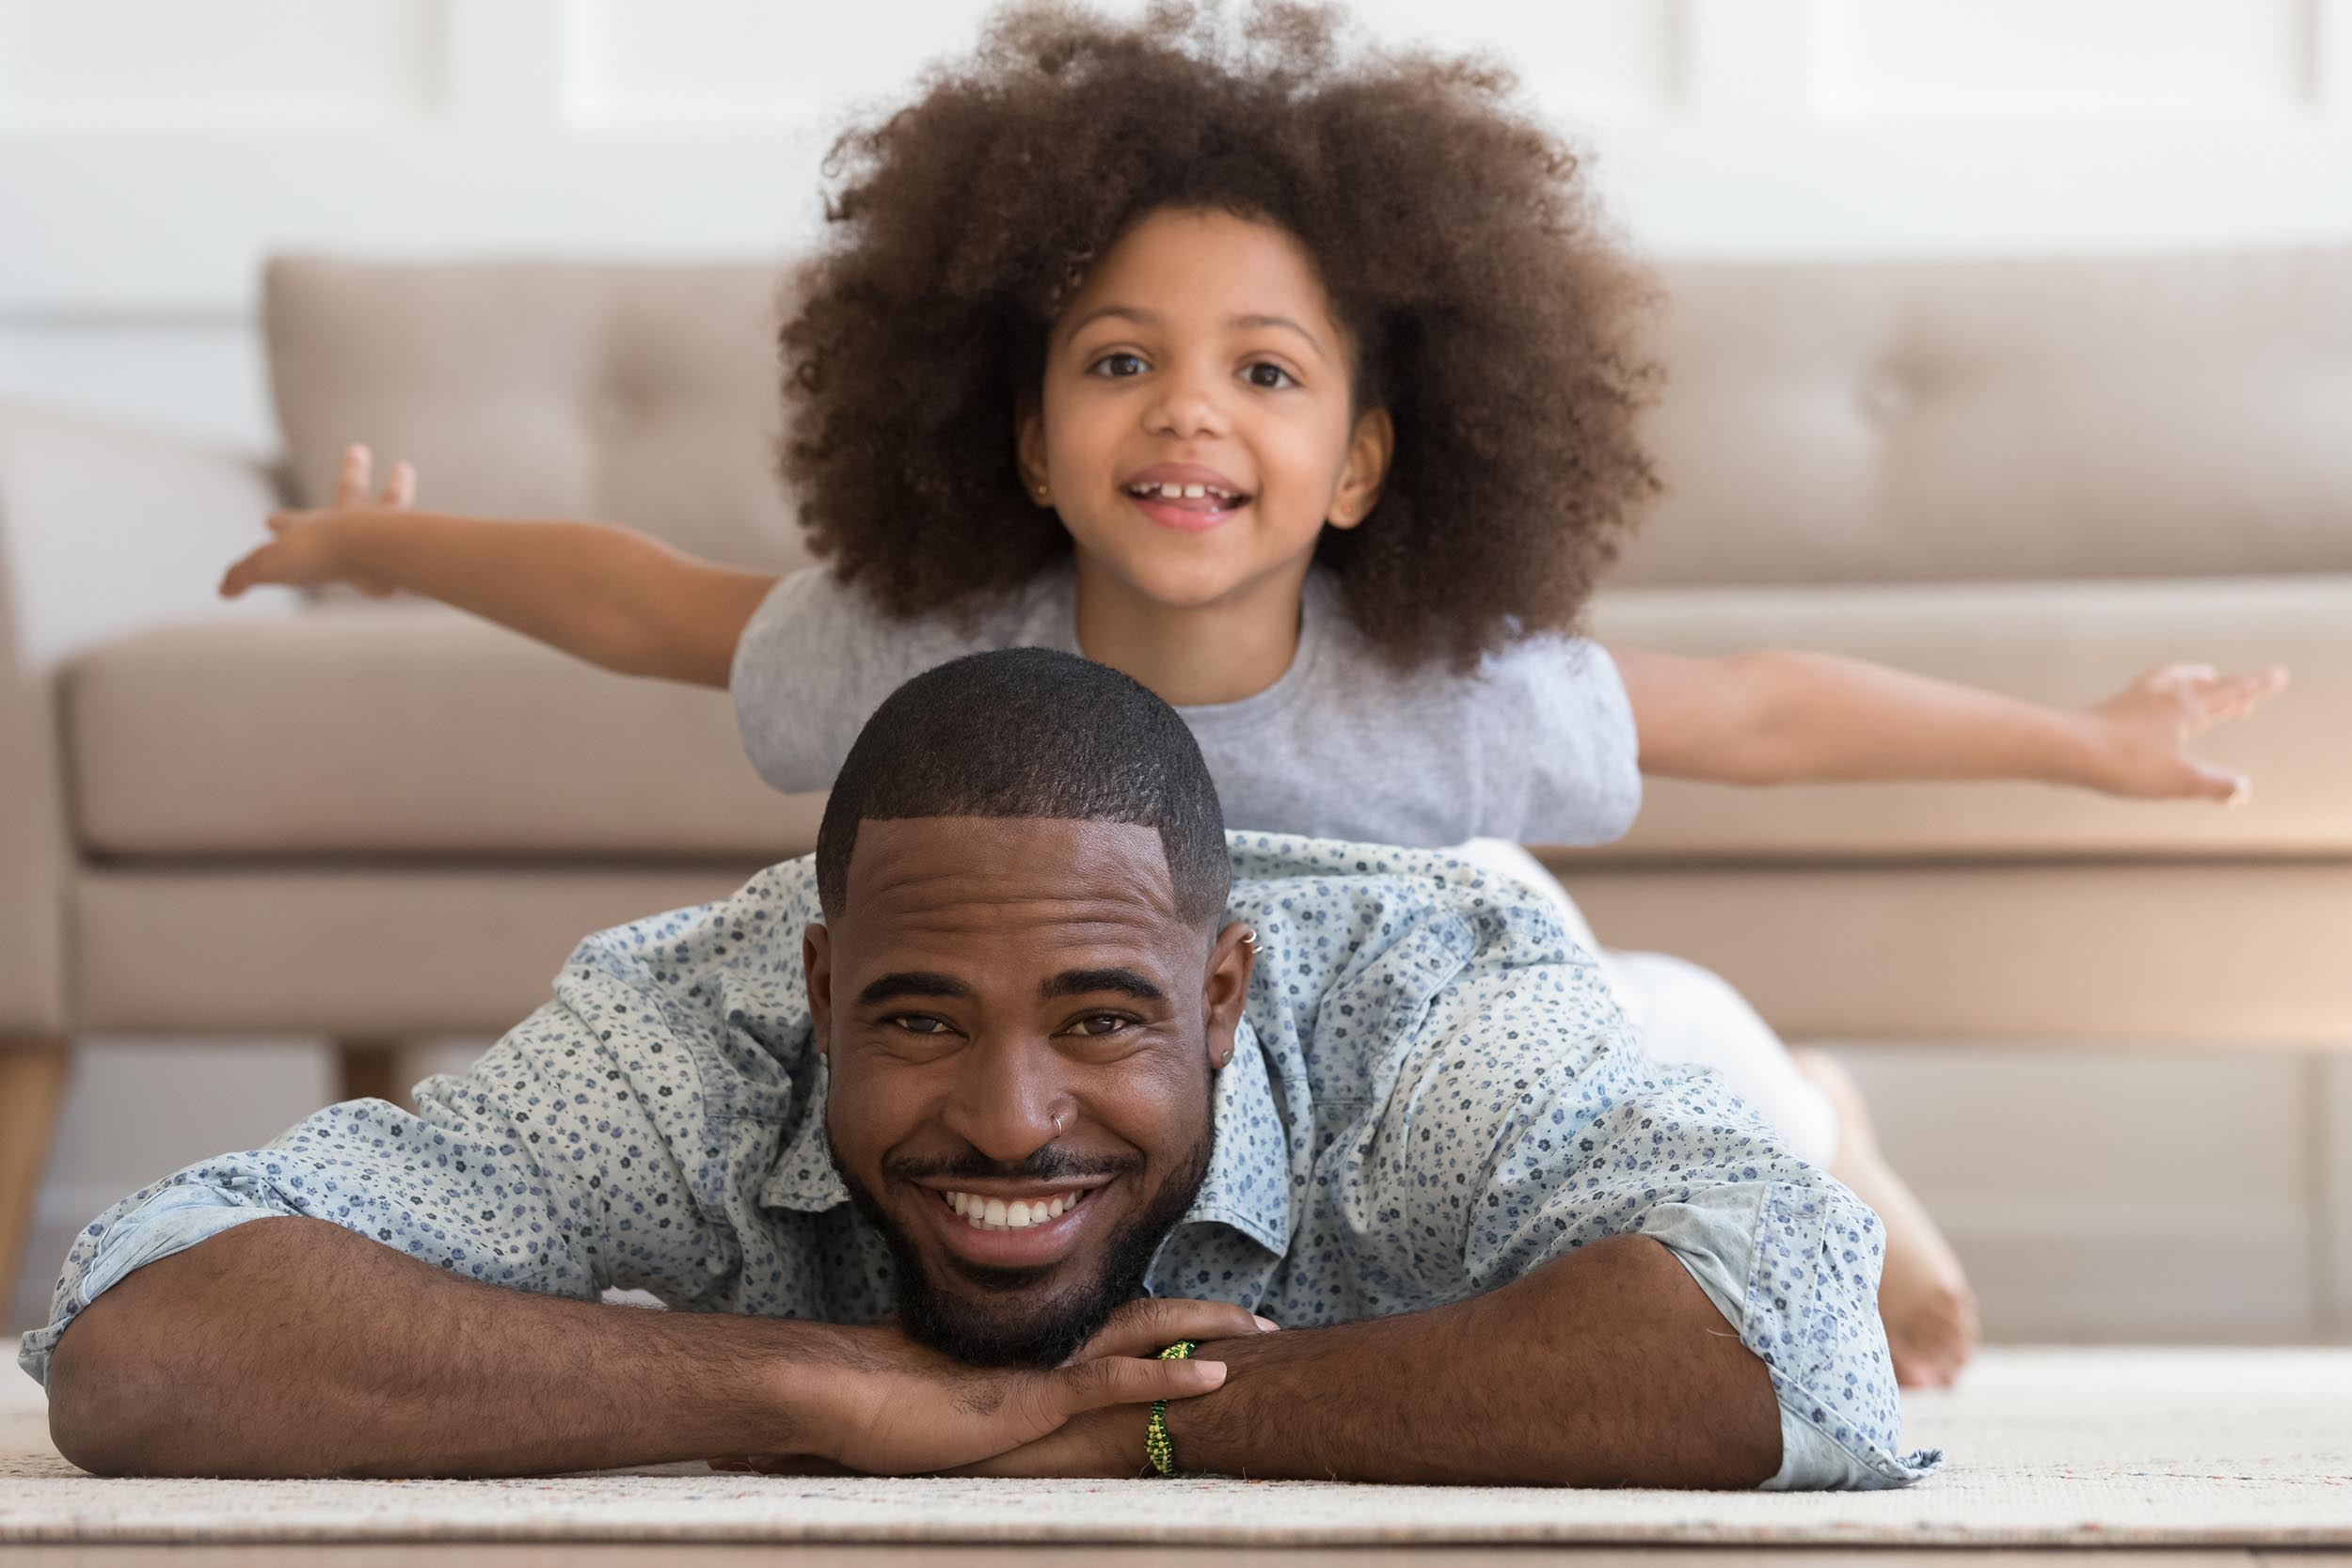 Happy african american joyful family of two portrait. Cheerful smiling black father lying on floor carpet, carrying little cute mixed race daughter, pretending to be plane, on back looking at camera.